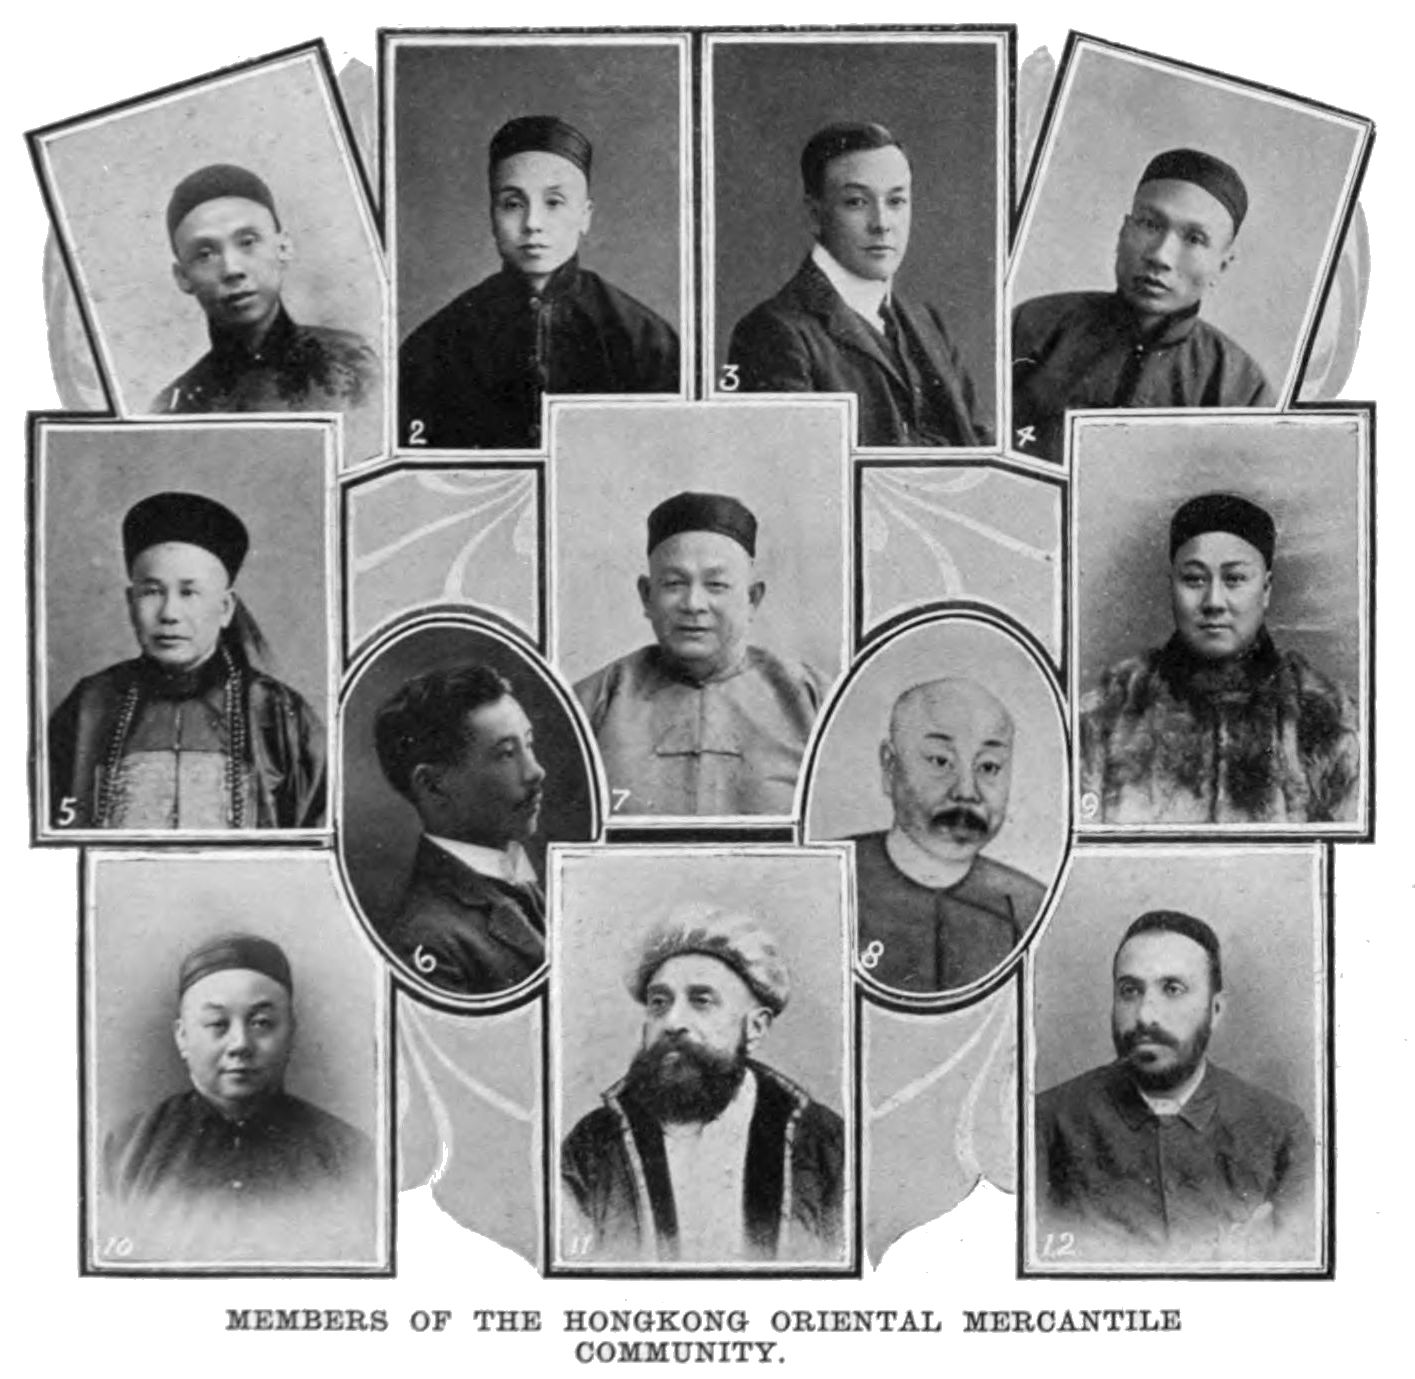 Tcitp d232 members of the hong kong oriental mercantile community.jpg